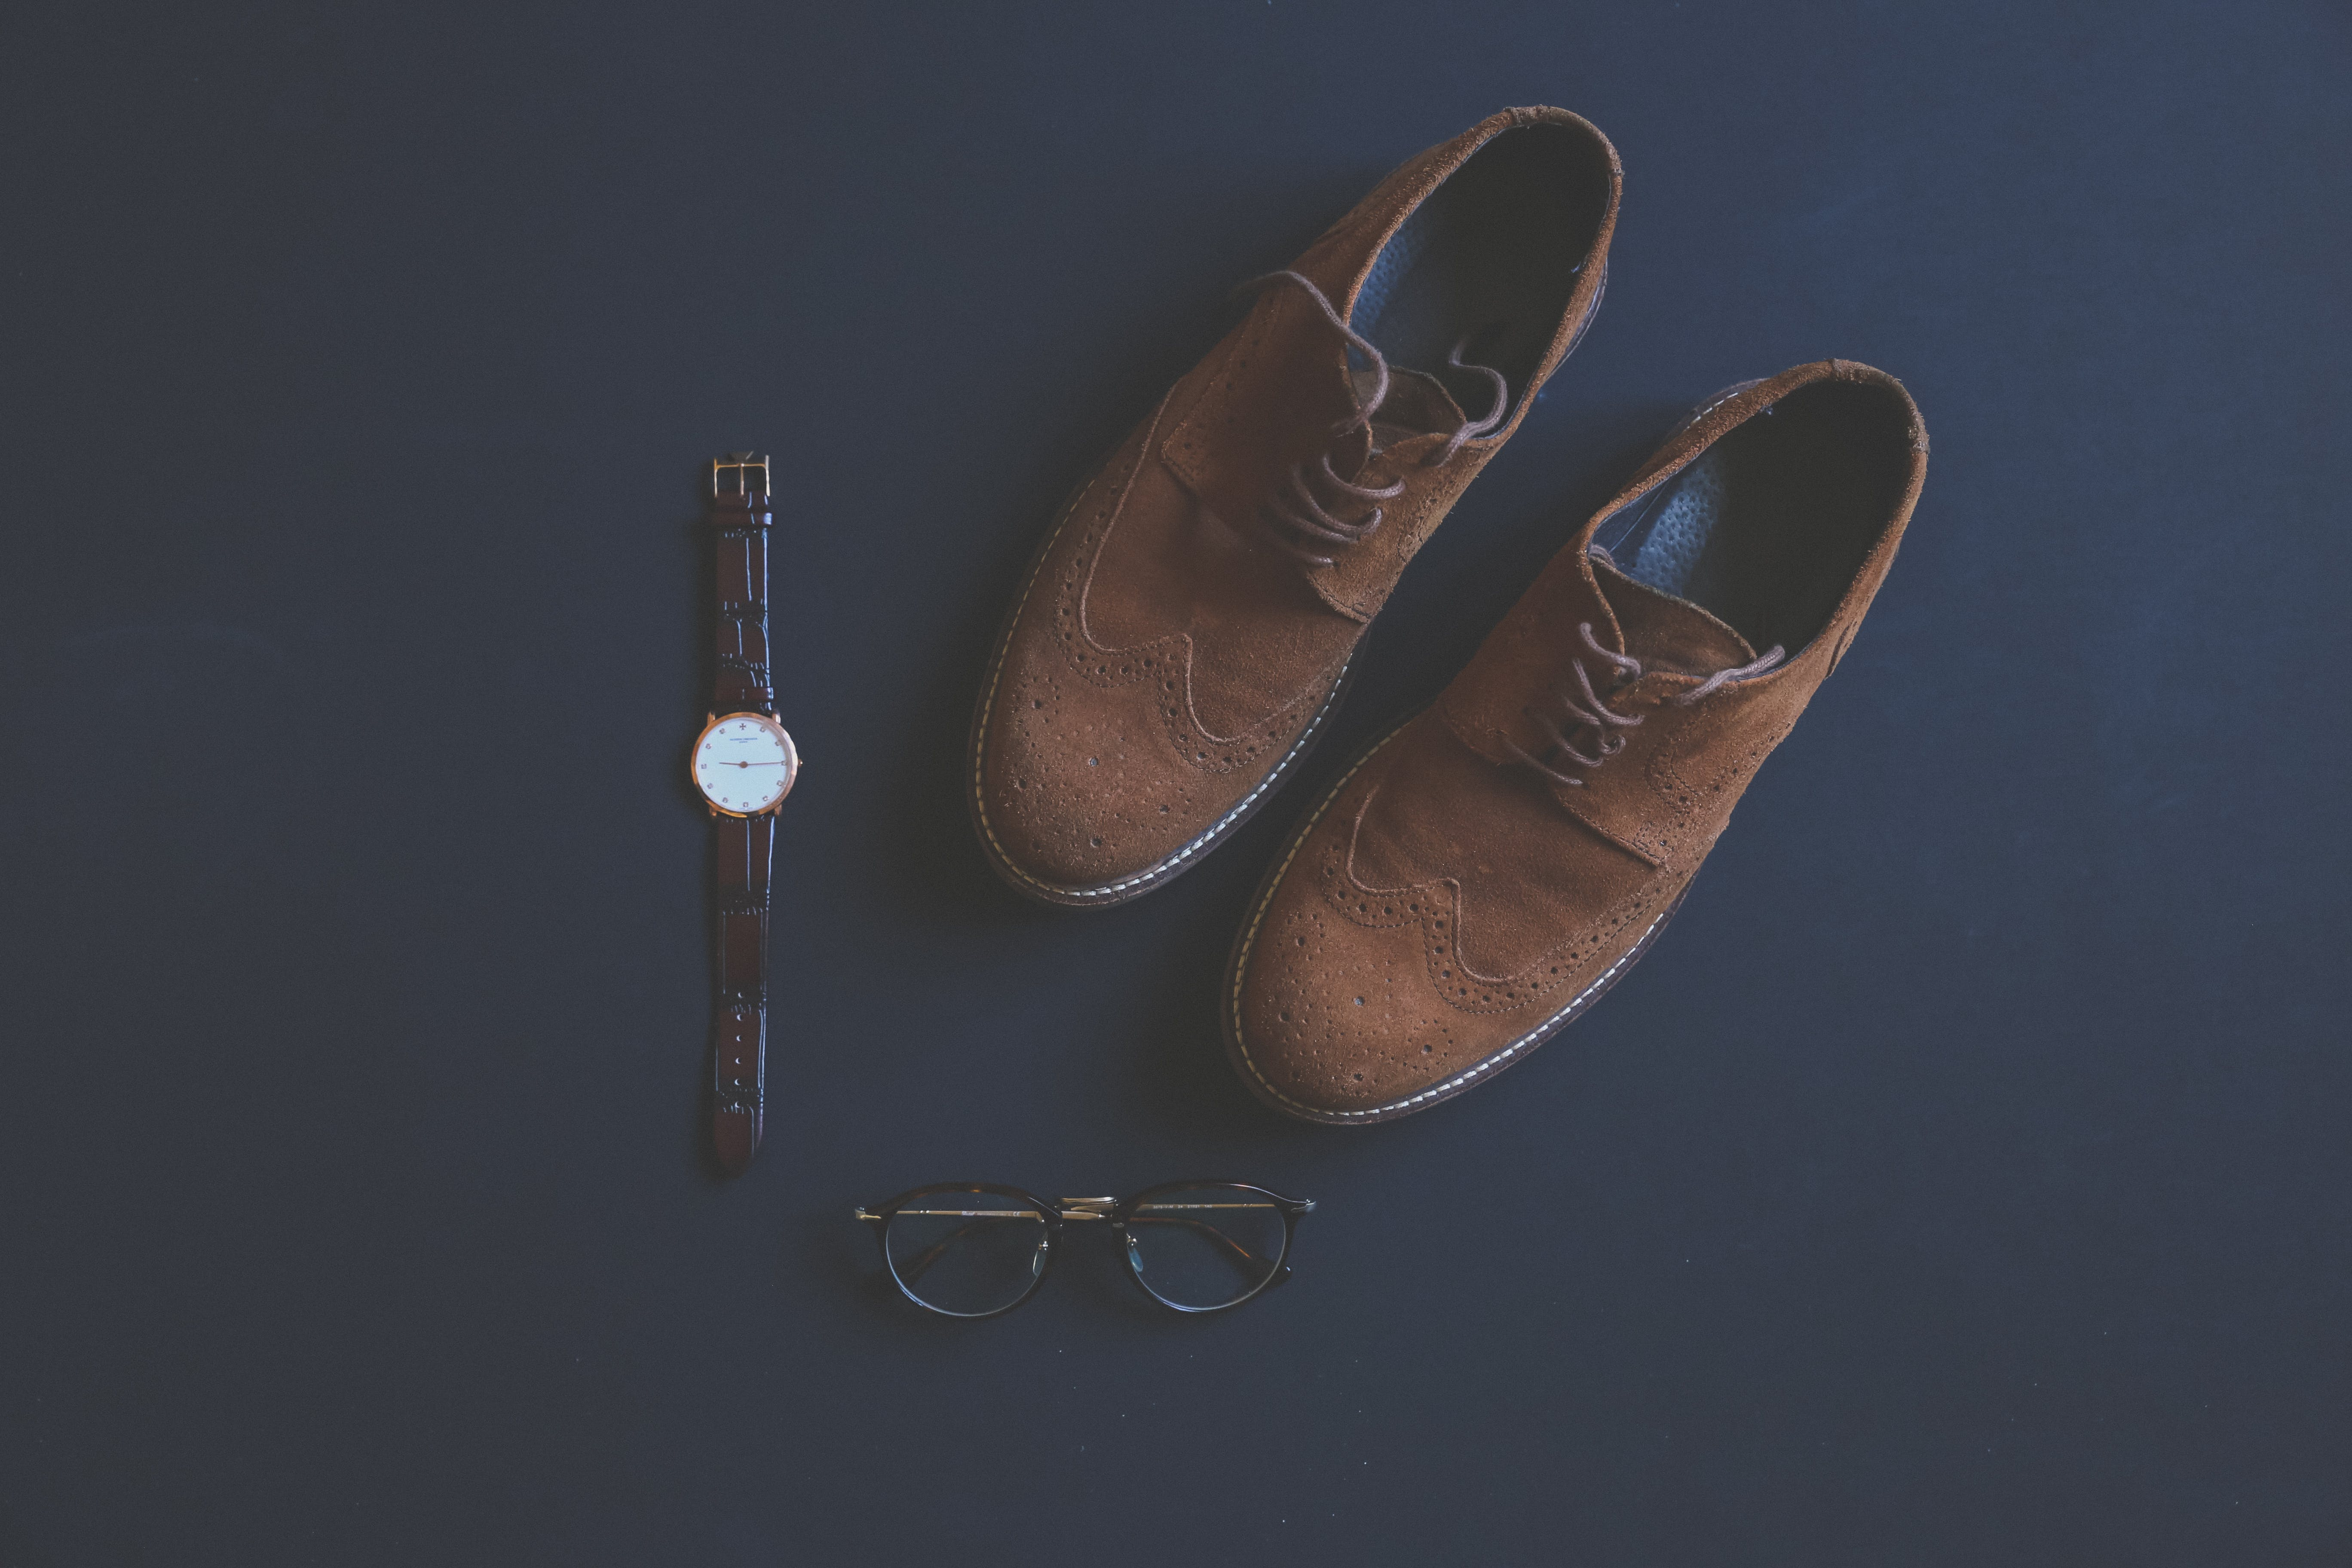 Brown Leather Brogue Shoes Beside Eyeglasses and Watch